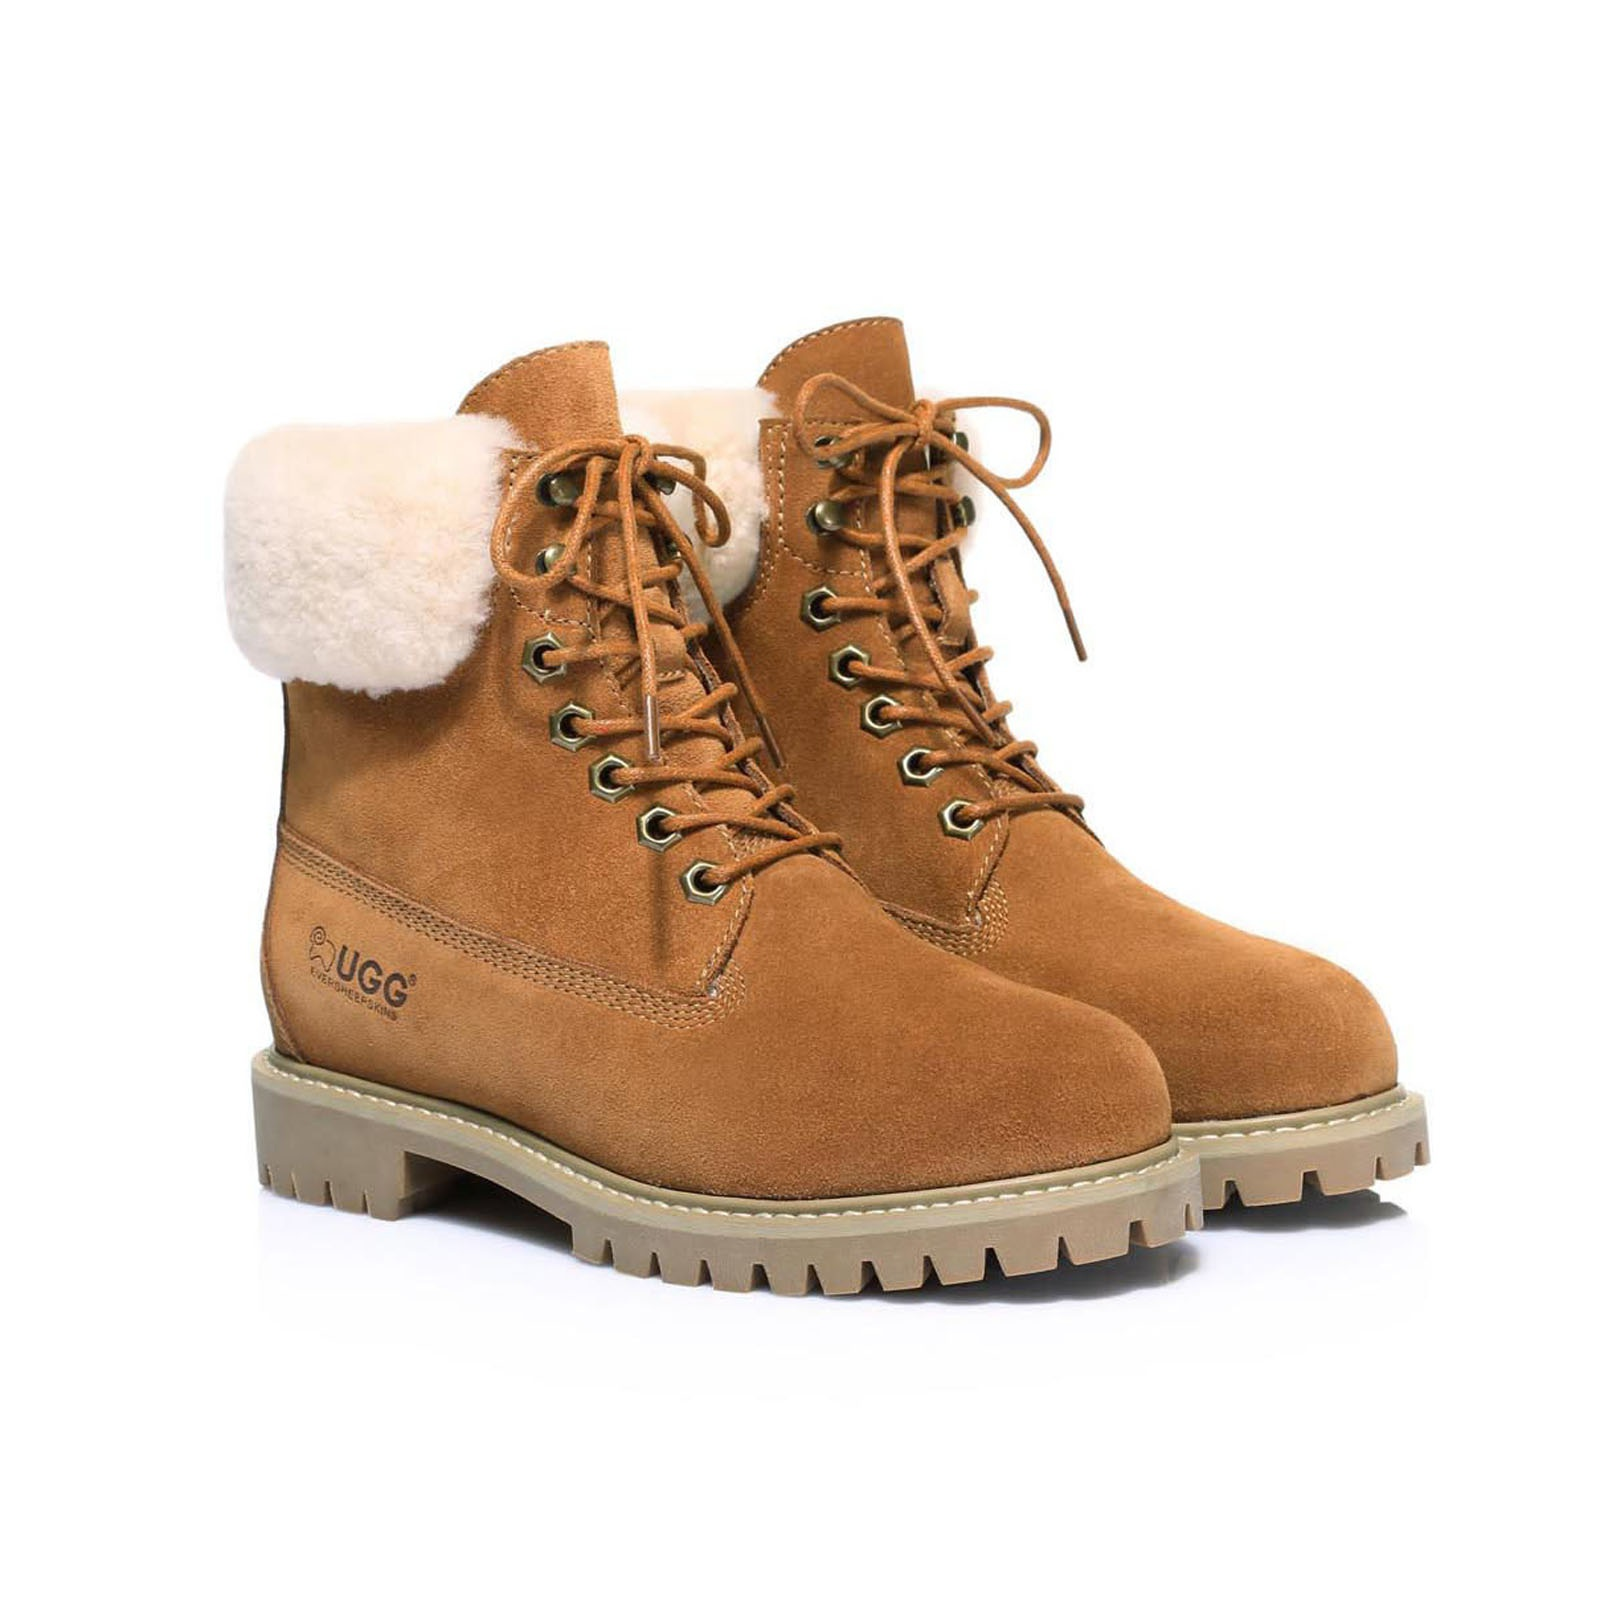 UGG-Boots-Australian-wool-Genuine-Hope-Ladies-Fashion-with-Front-Lace-lining thumbnail 8